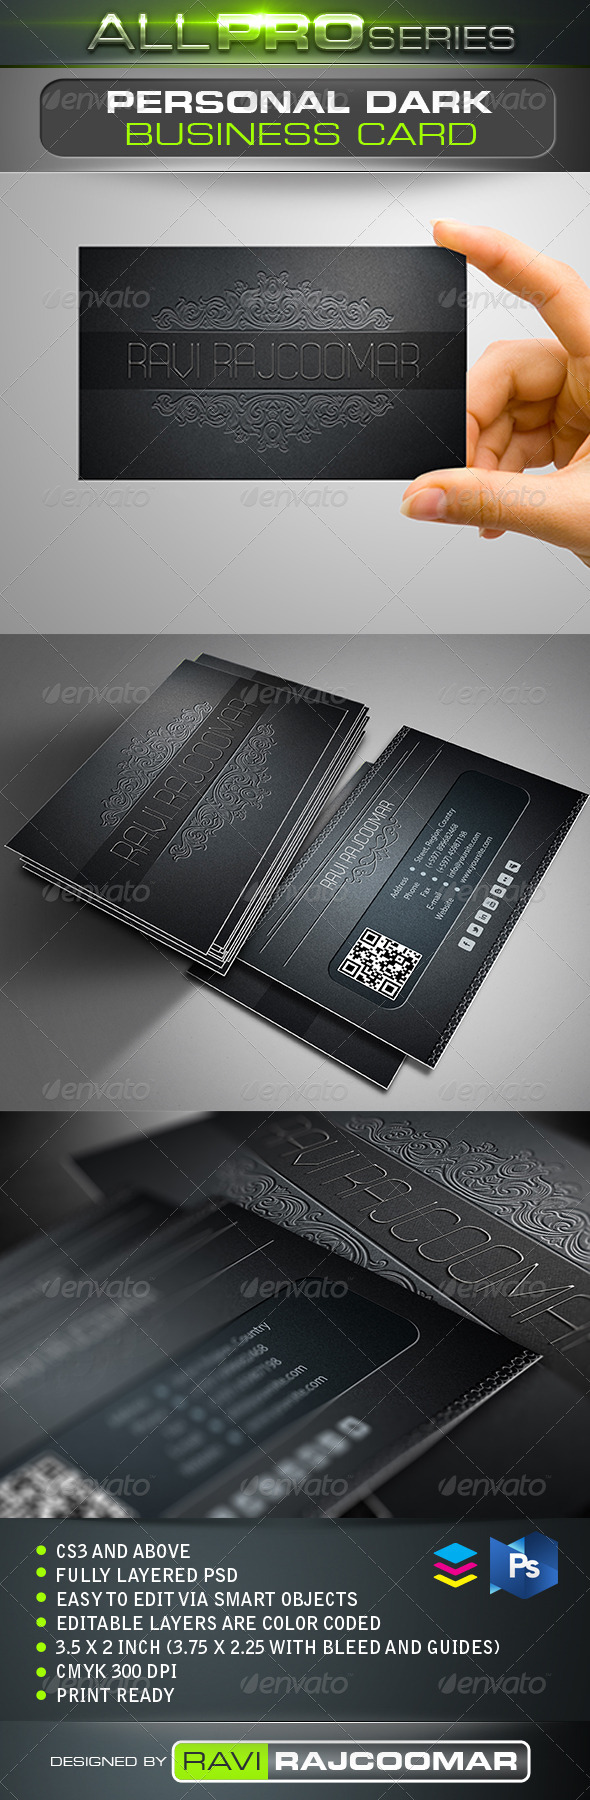 Personal Dark Business Card - Business Cards Print Templates